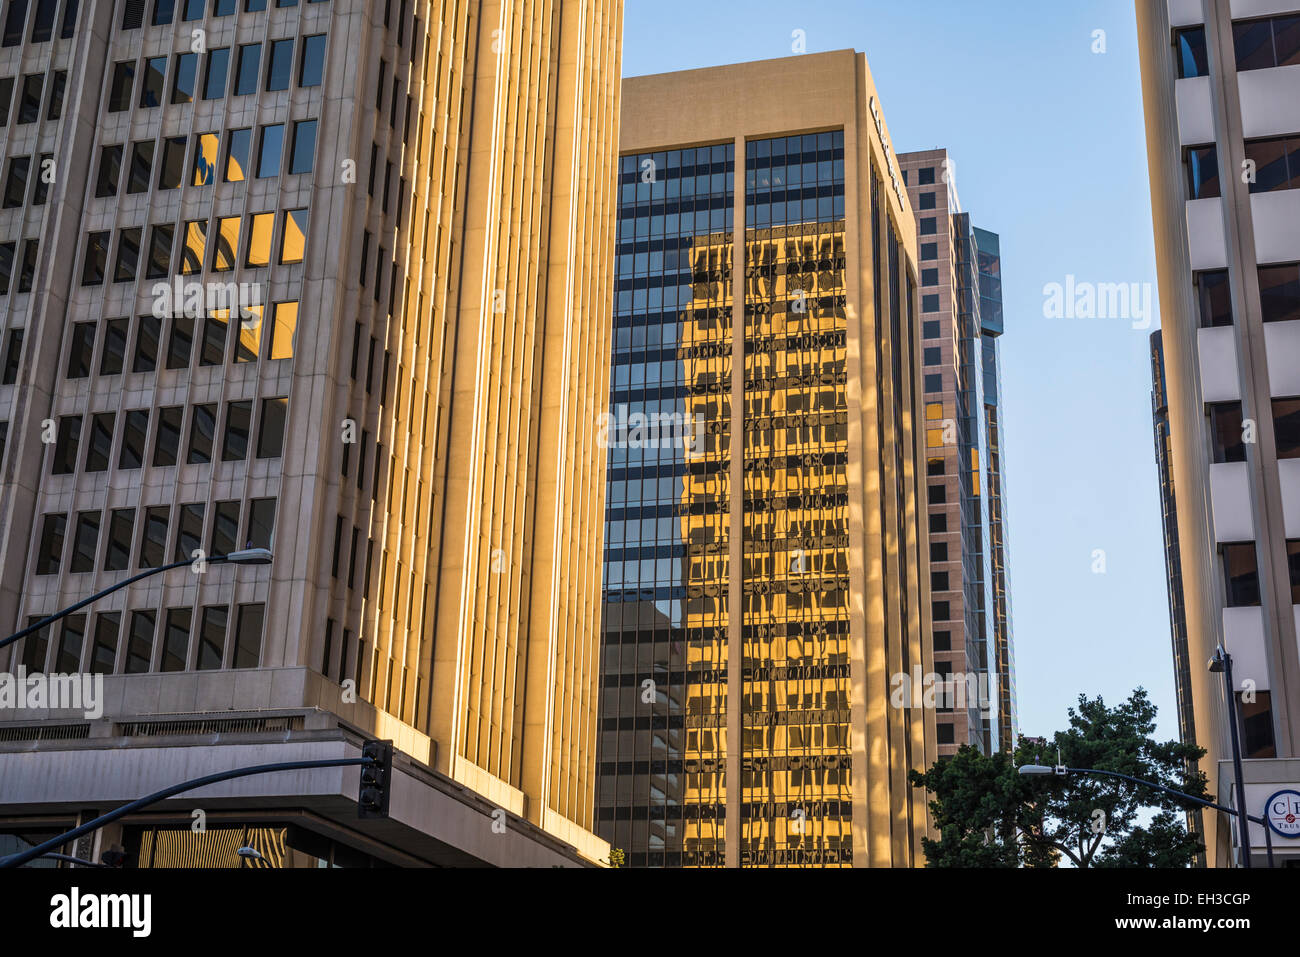 The rising Sun illuminating buildings in Downtown San Diego. San Diego, California, United States. - Stock Image